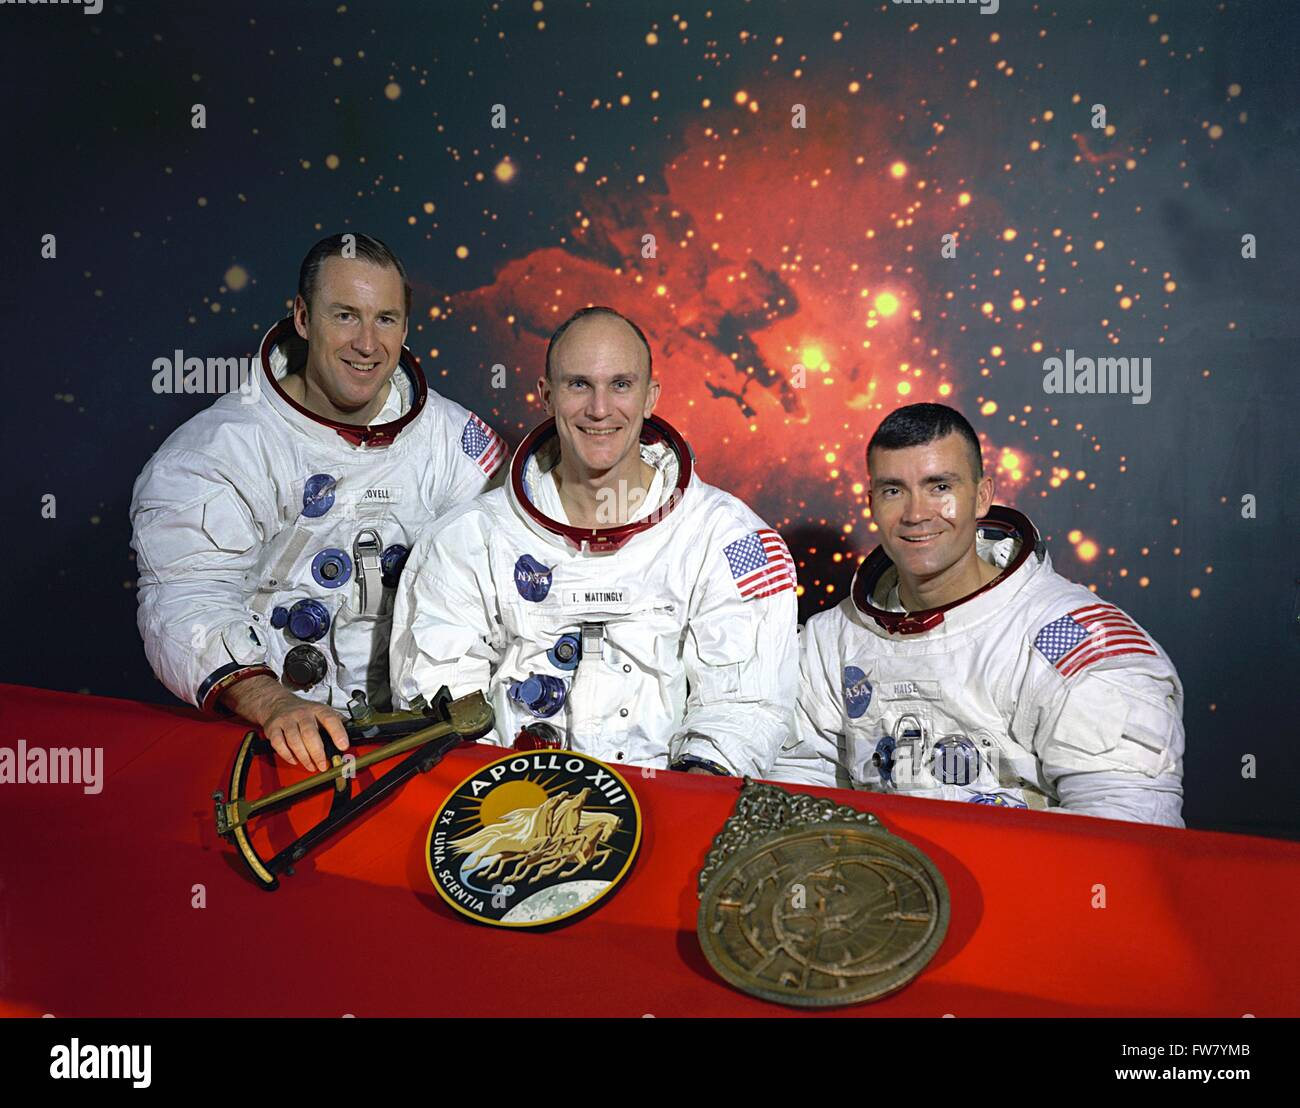 Apollo 13 prime crew pose together in their spacesuits with a model of a sextant, the Apollo 13 insignia, and a - Stock Image